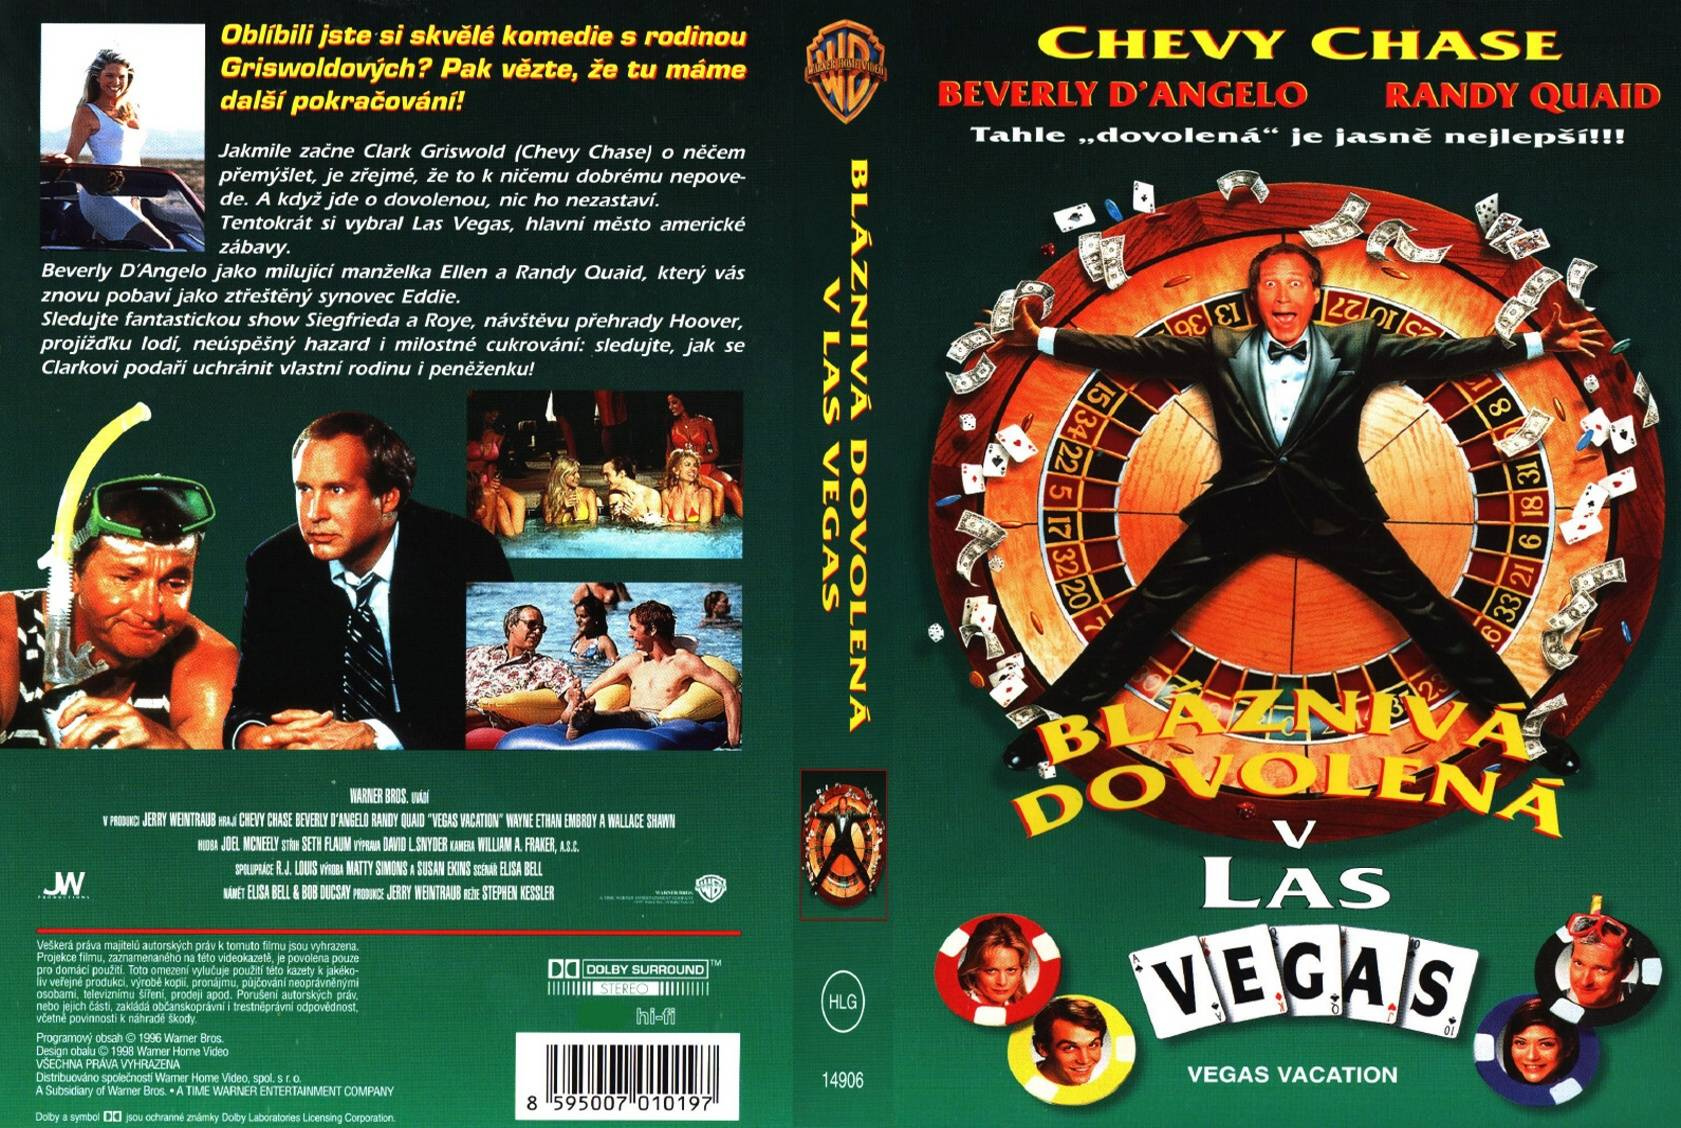 Vacation in vegas movie